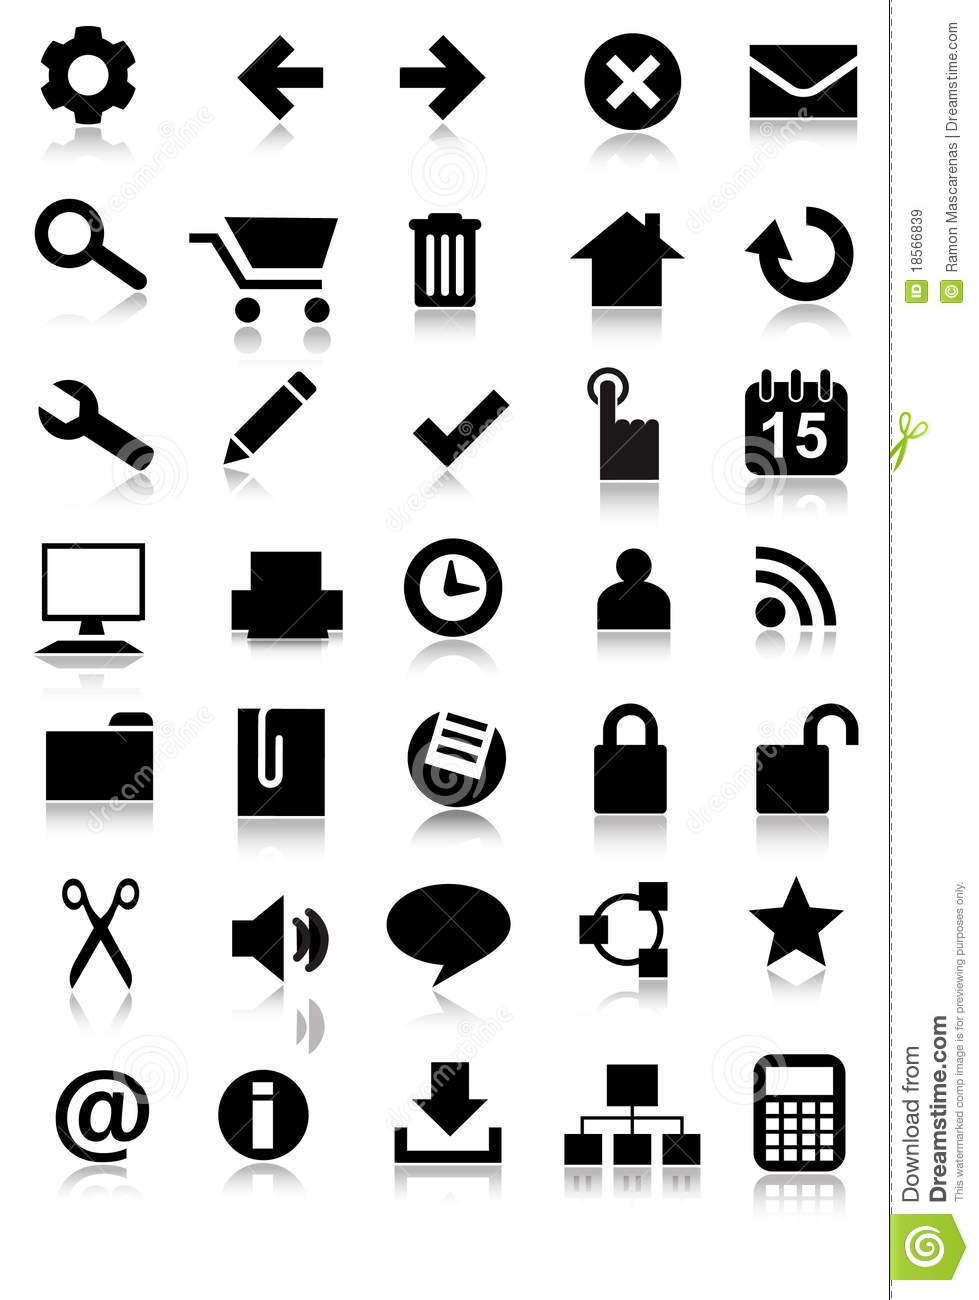 Simple Web Icon Set Application Royalty Free Stock Images